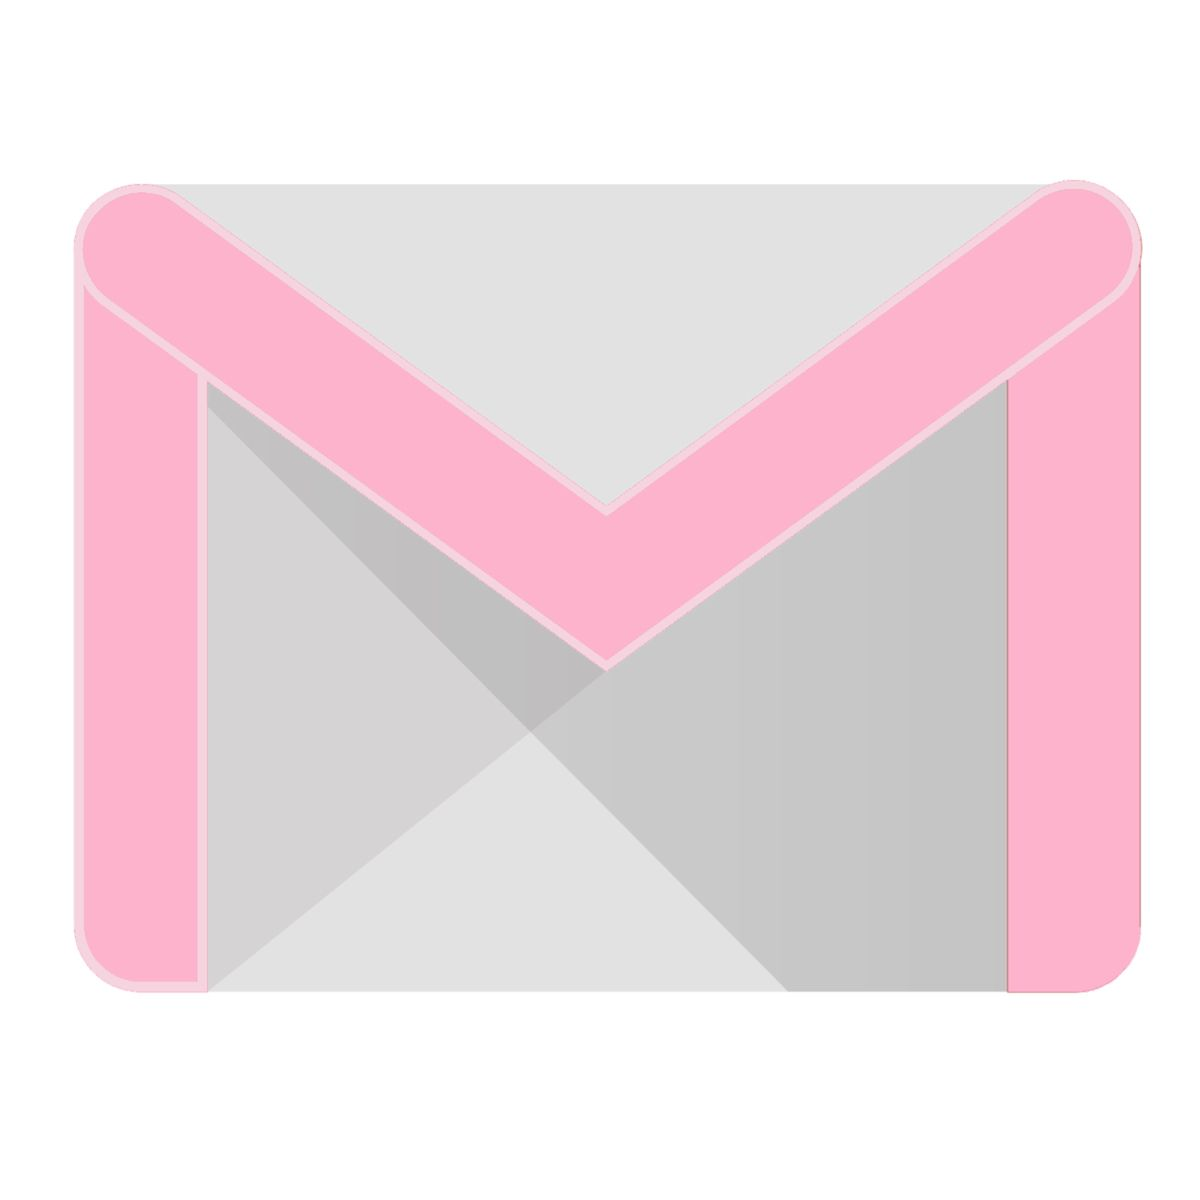 Pink Gmail Icon Iphone Wallpaper App App Icon Iphone Wallpaper Tumblr Aesthetic